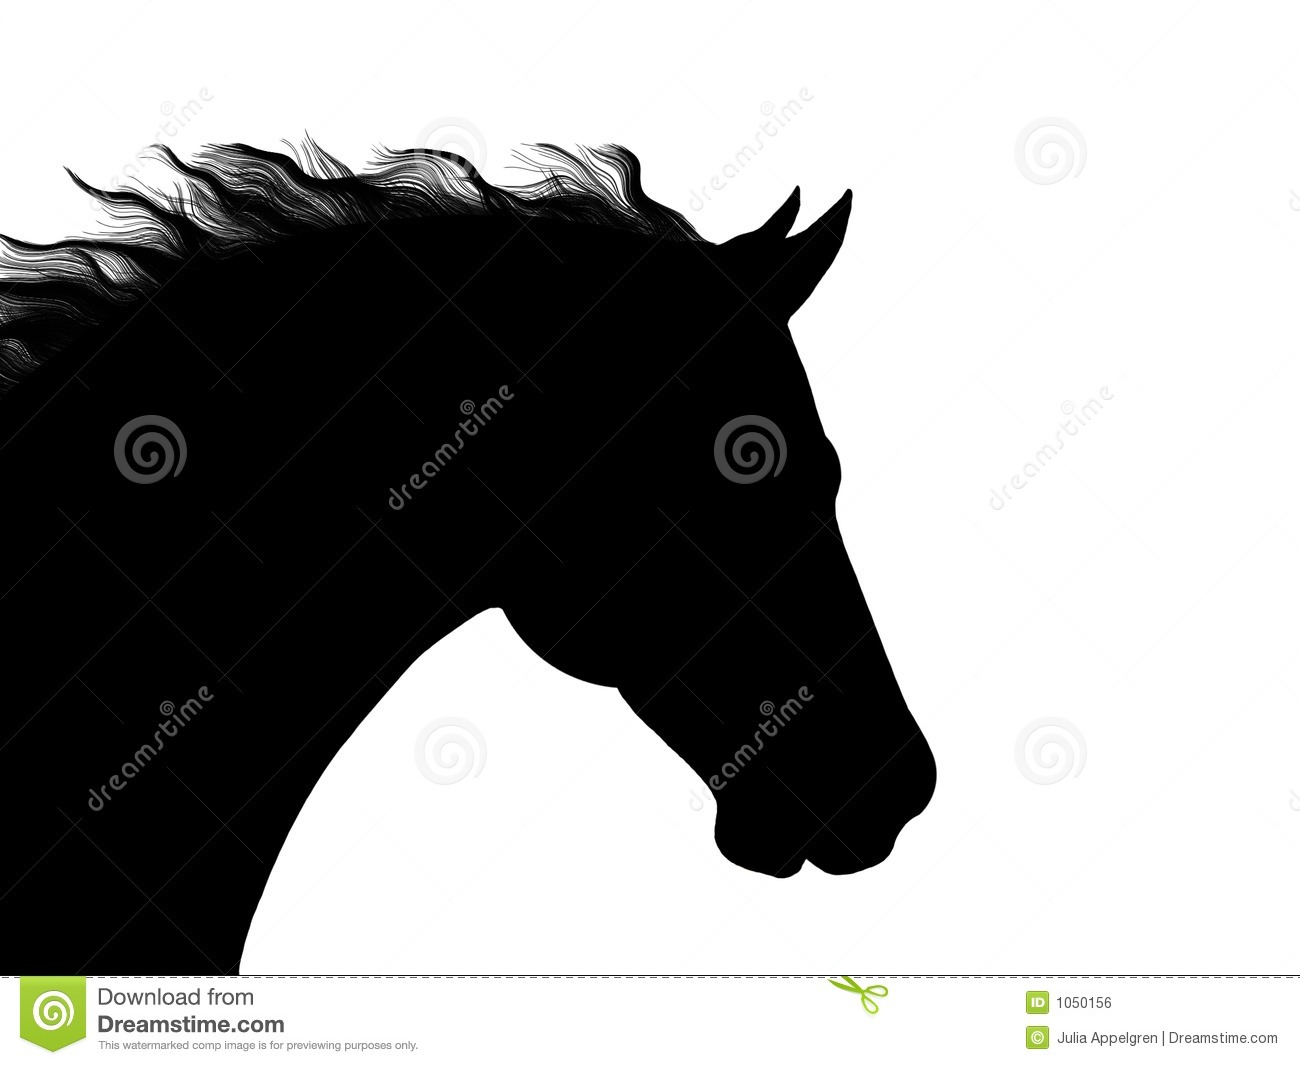 Quarter horse head silhouette pictures